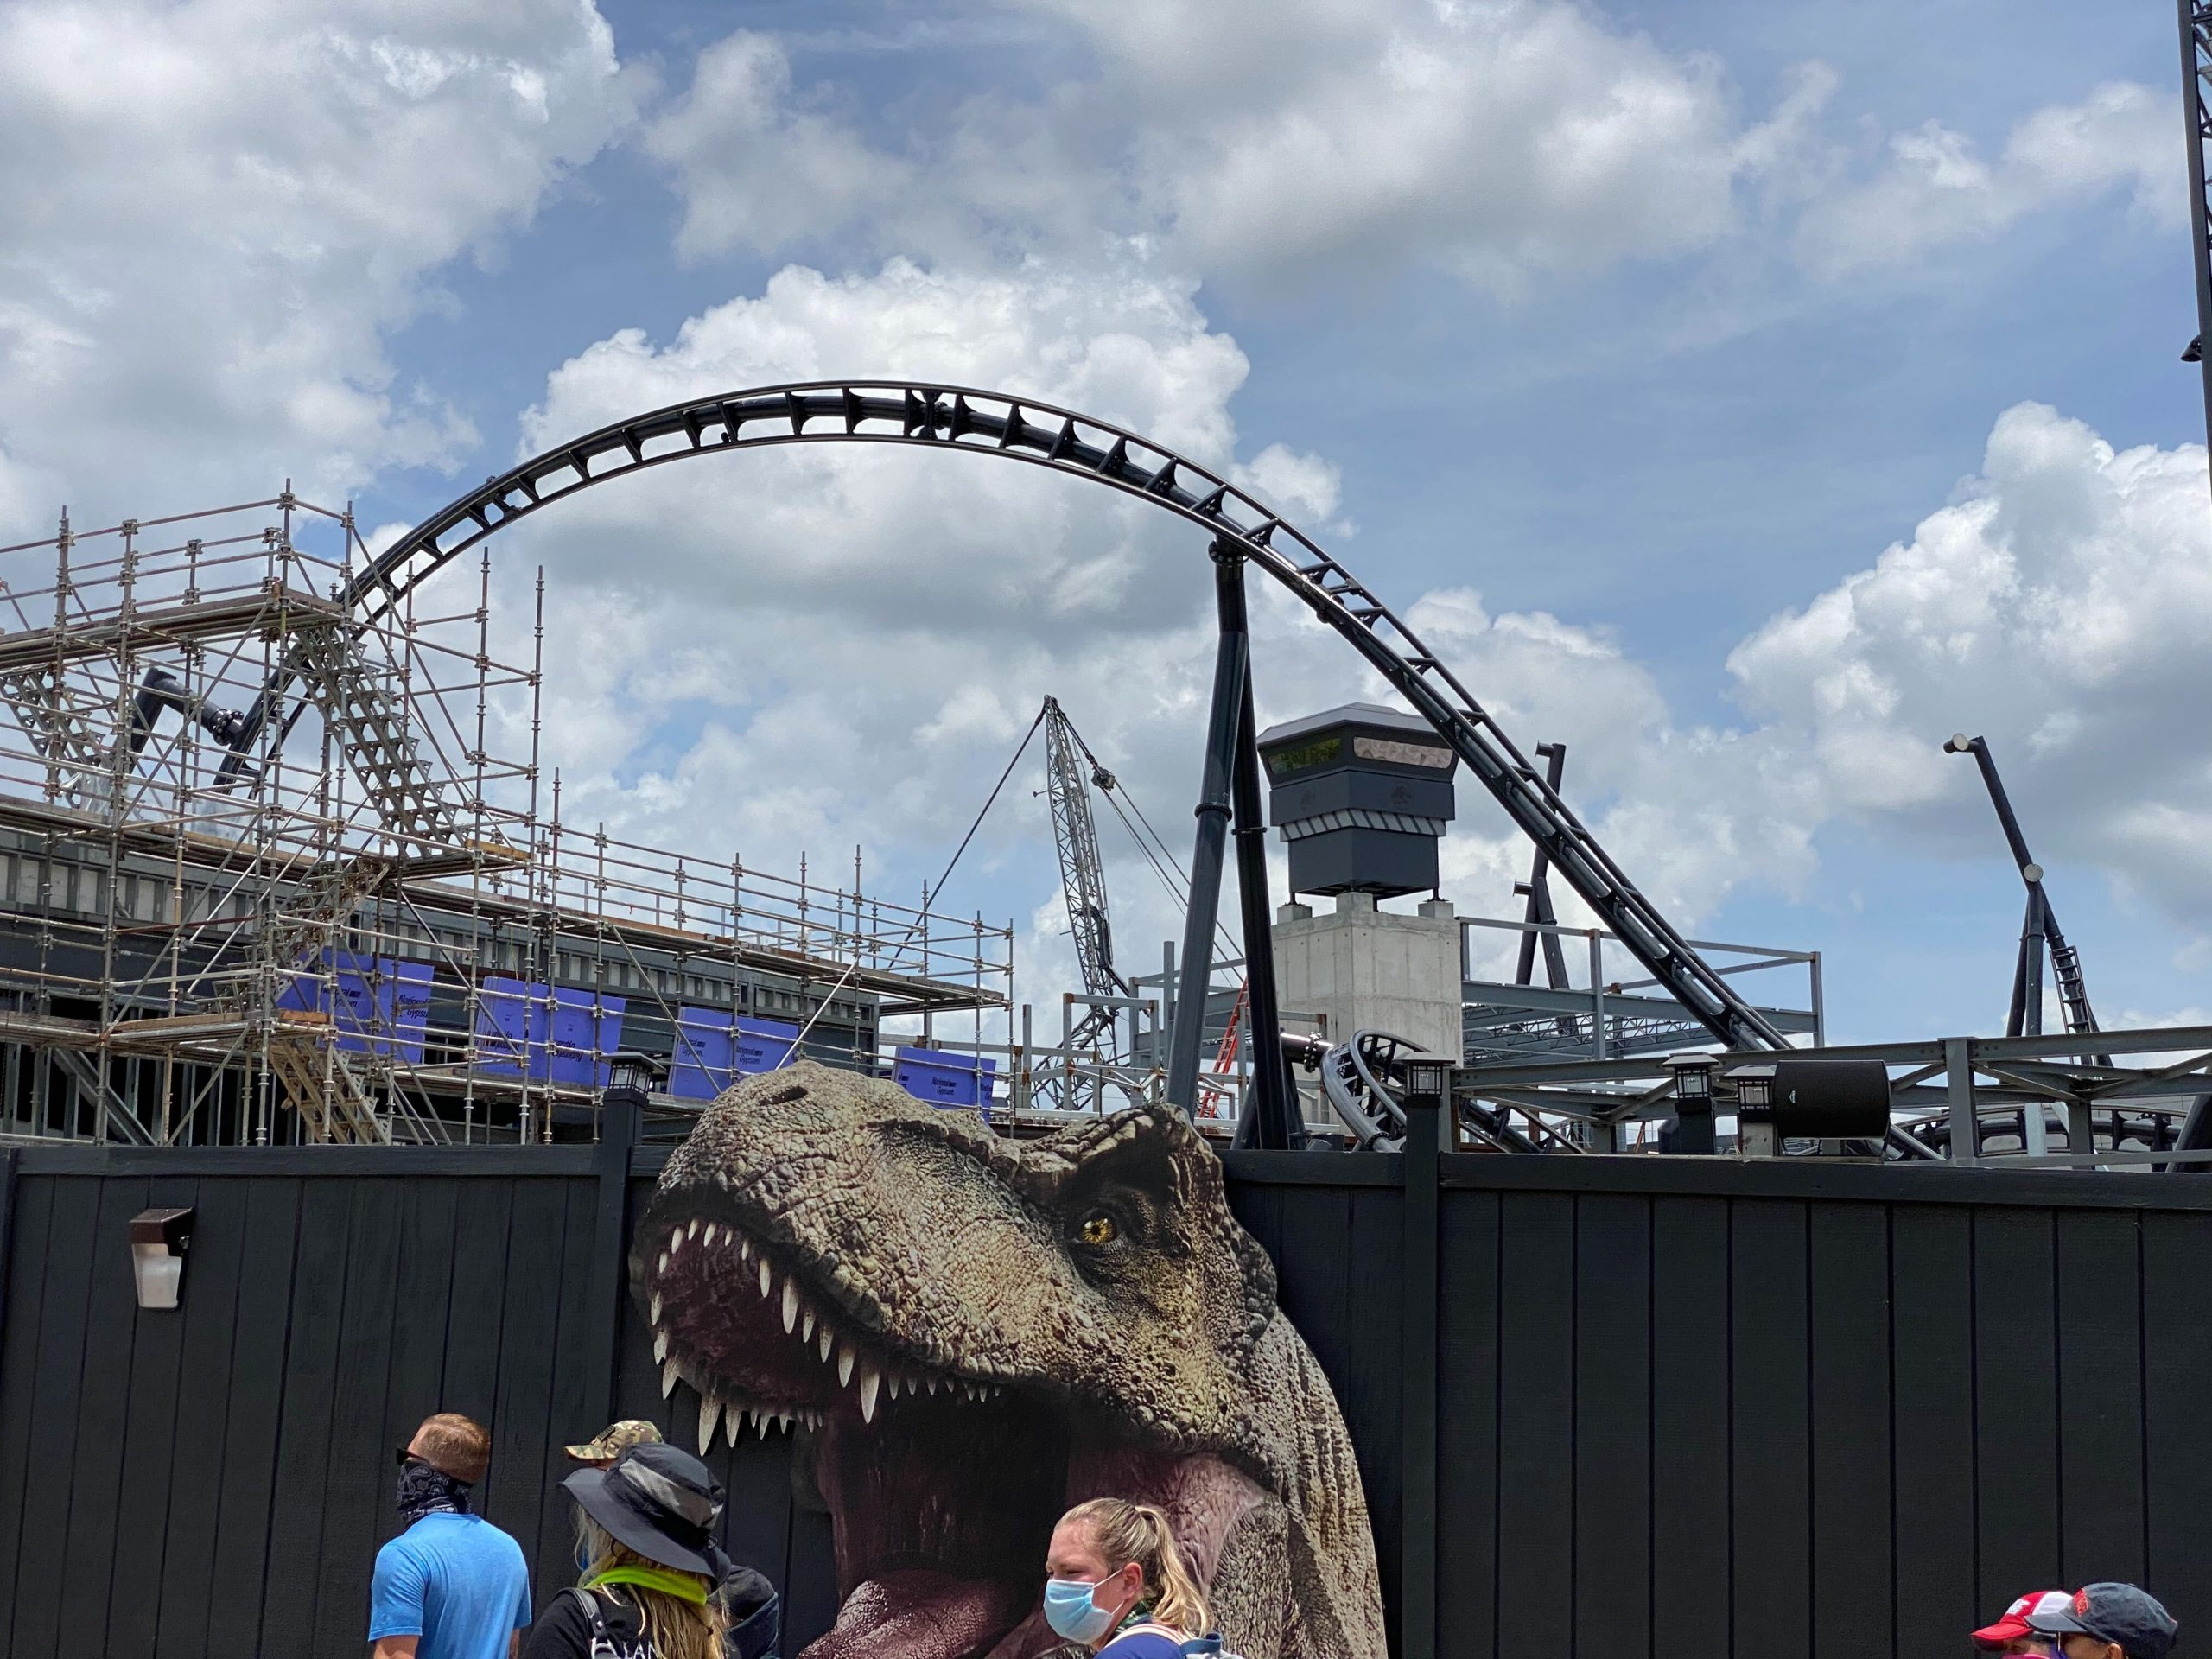 wdwnt.com - PHOTOS, VIDEO: Construction on Show Building and Rock Work Continues for 'Velocicoaster' In Jurassic Park at Universal's Islands of Adventure